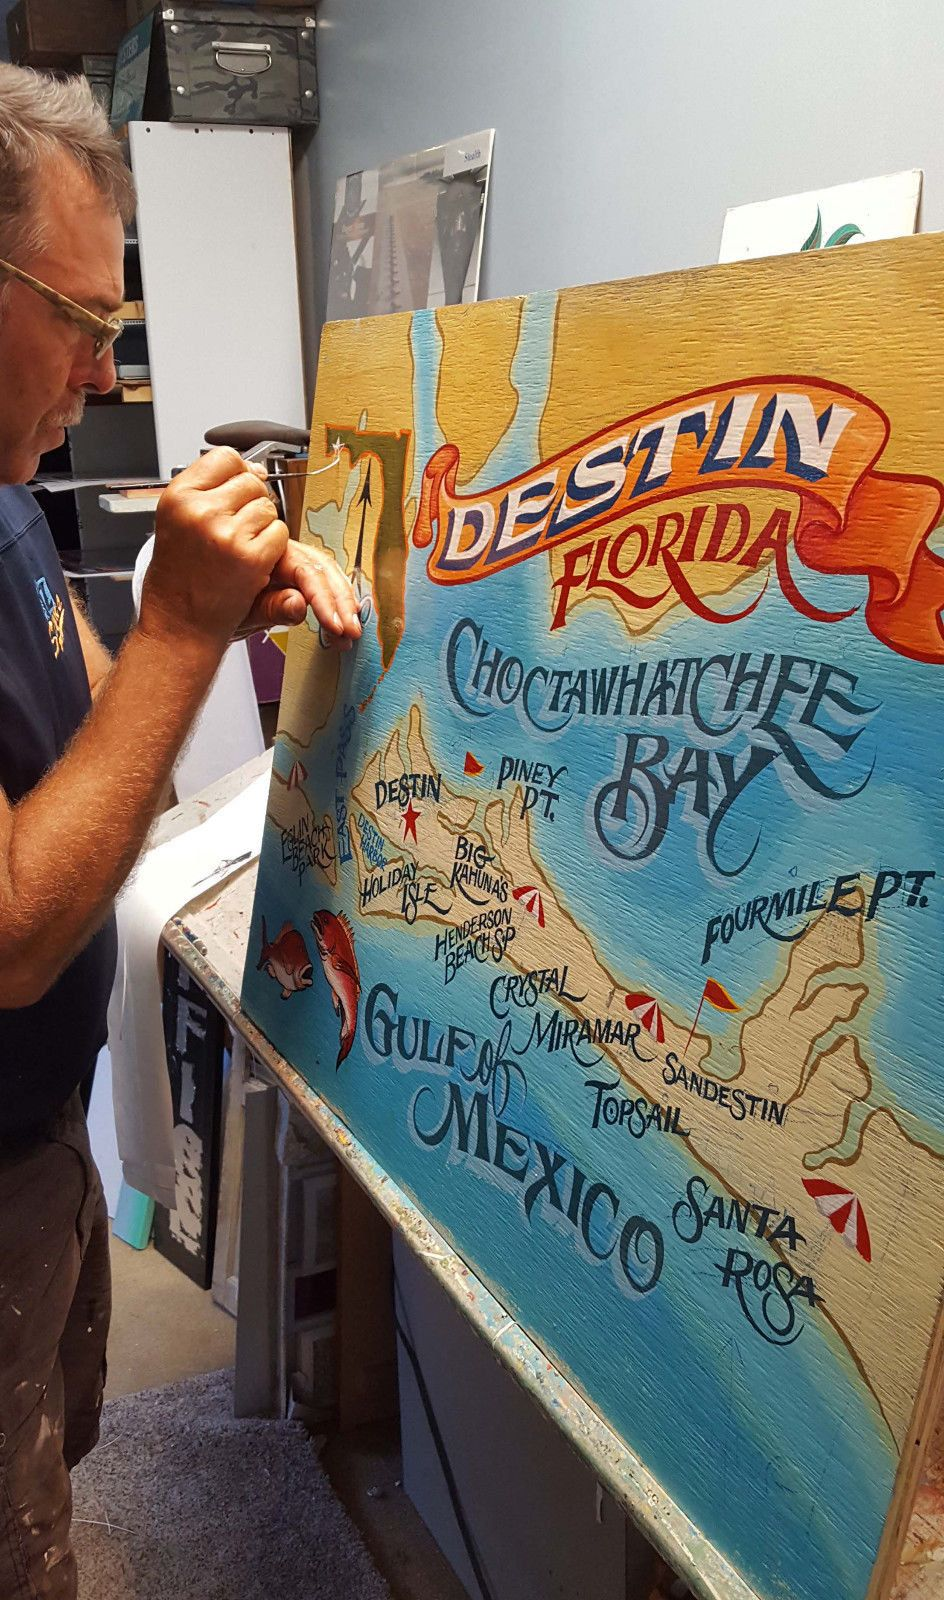 Destin florida sign handpainted and lettered great decor